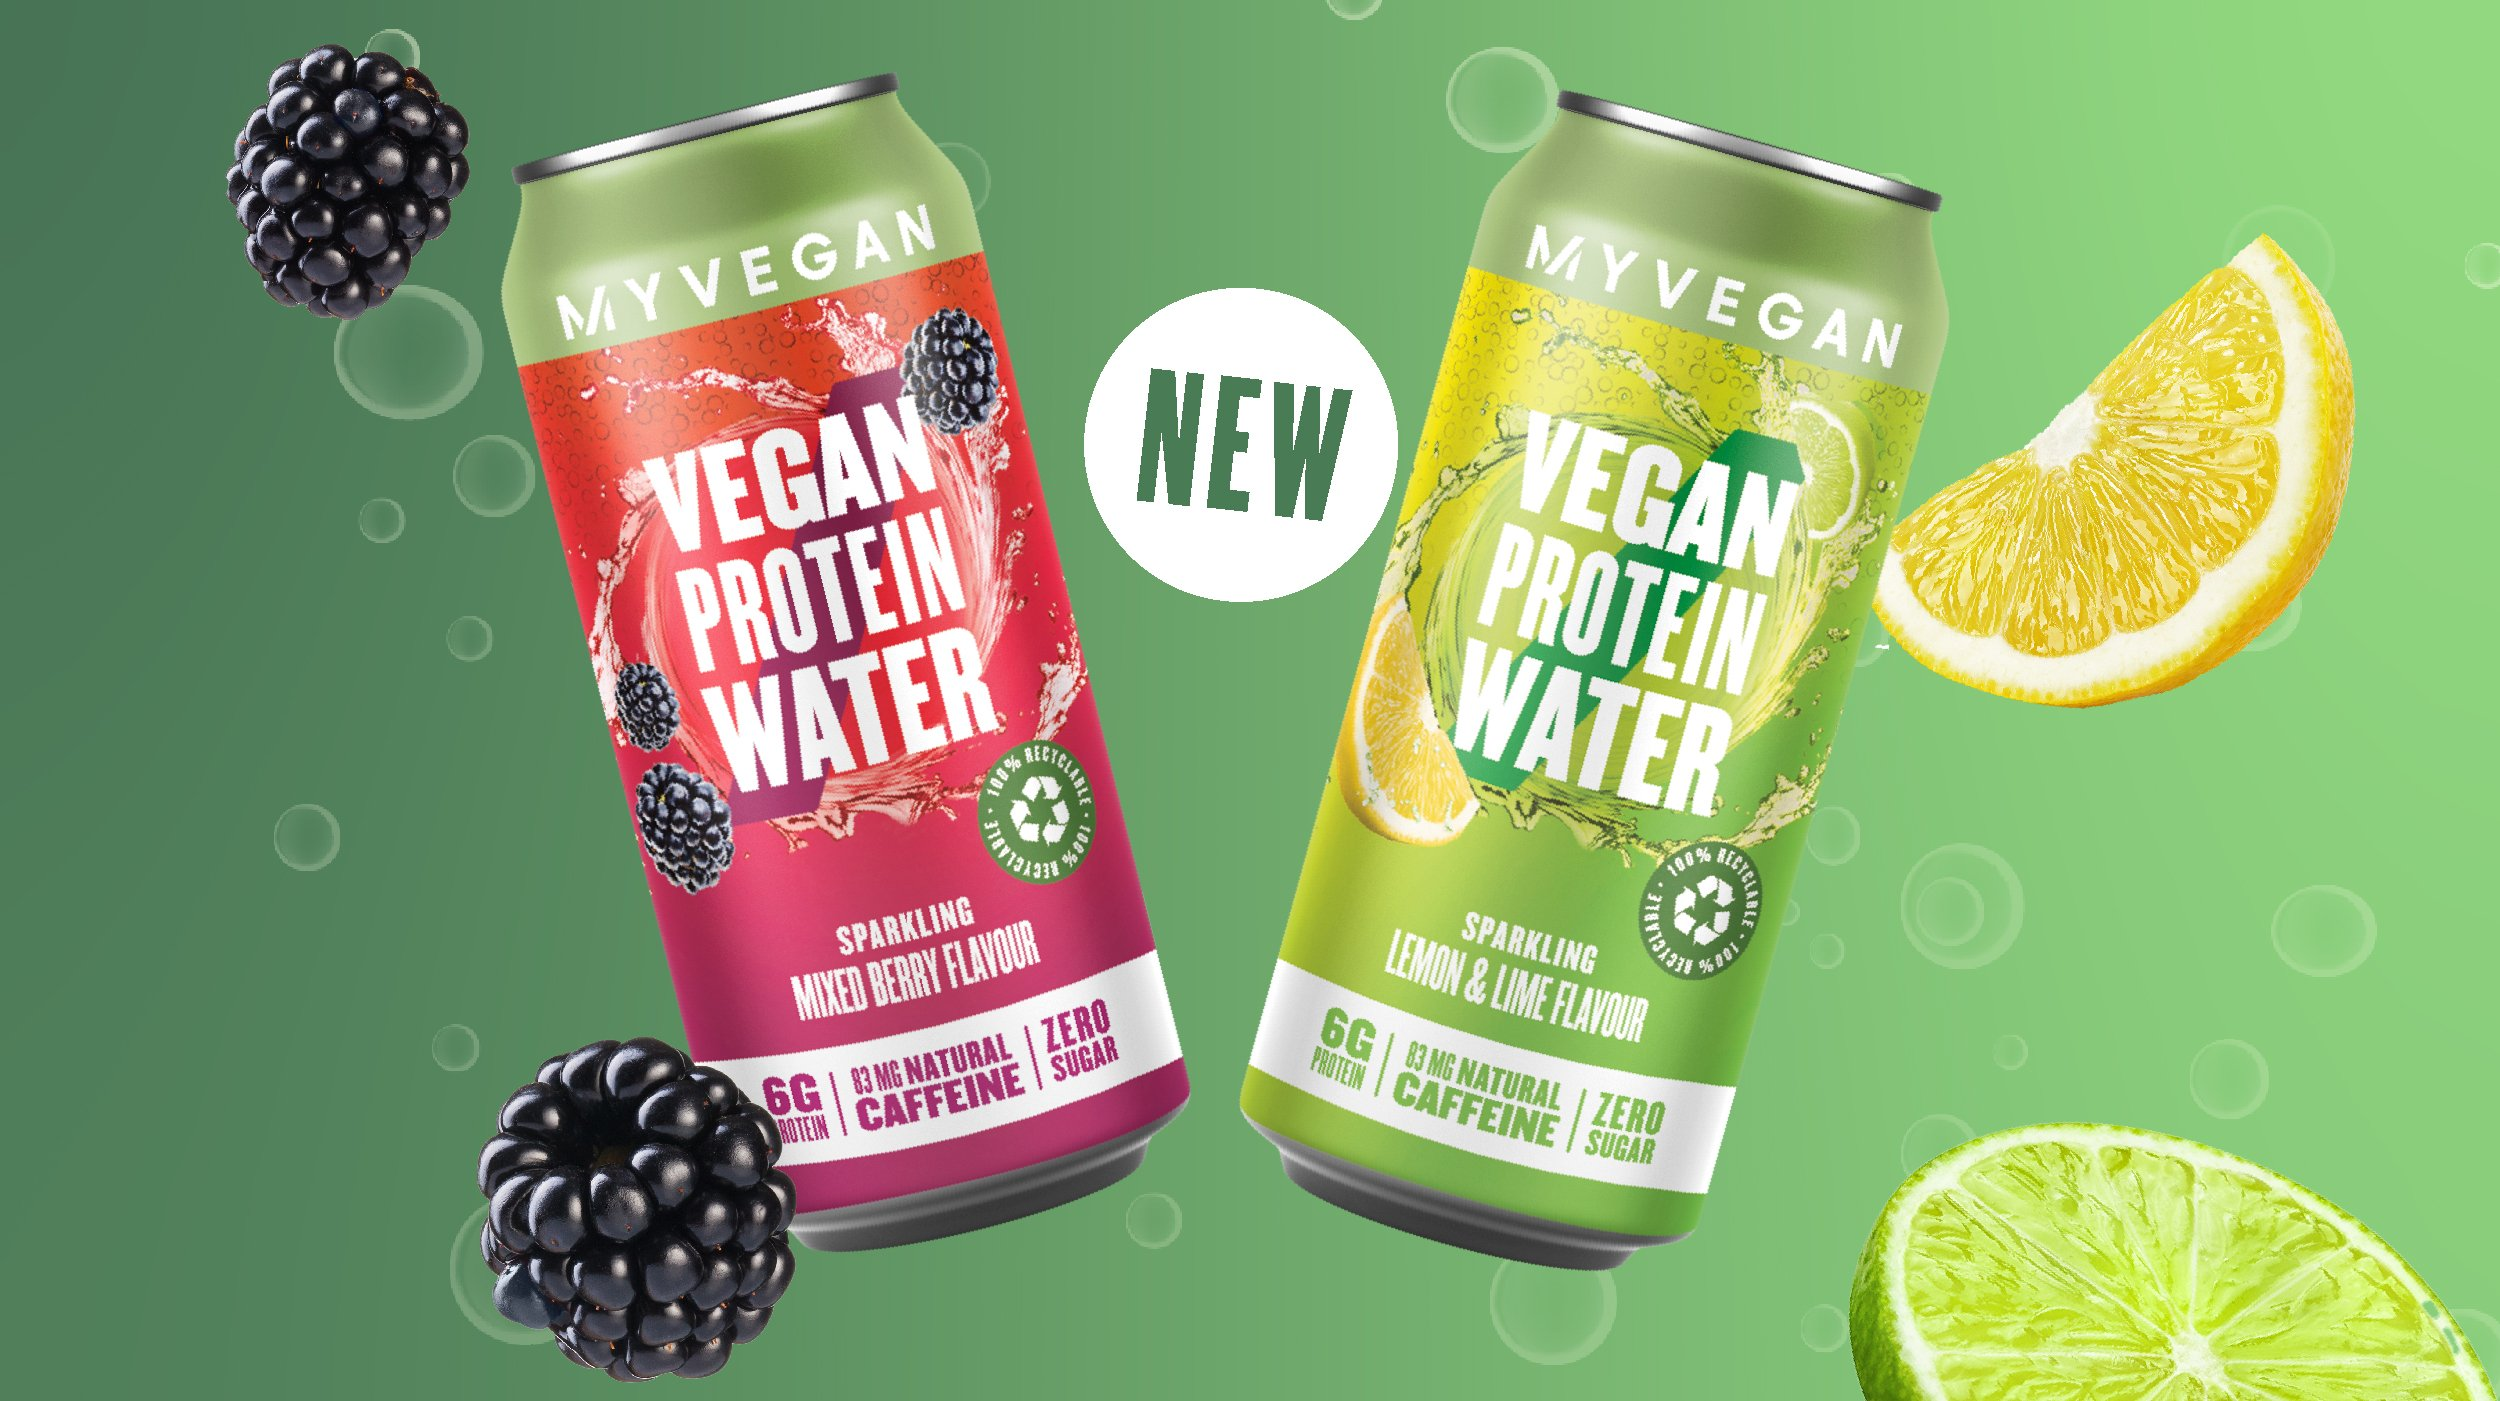 Introducing our Sparkling Protein Waters